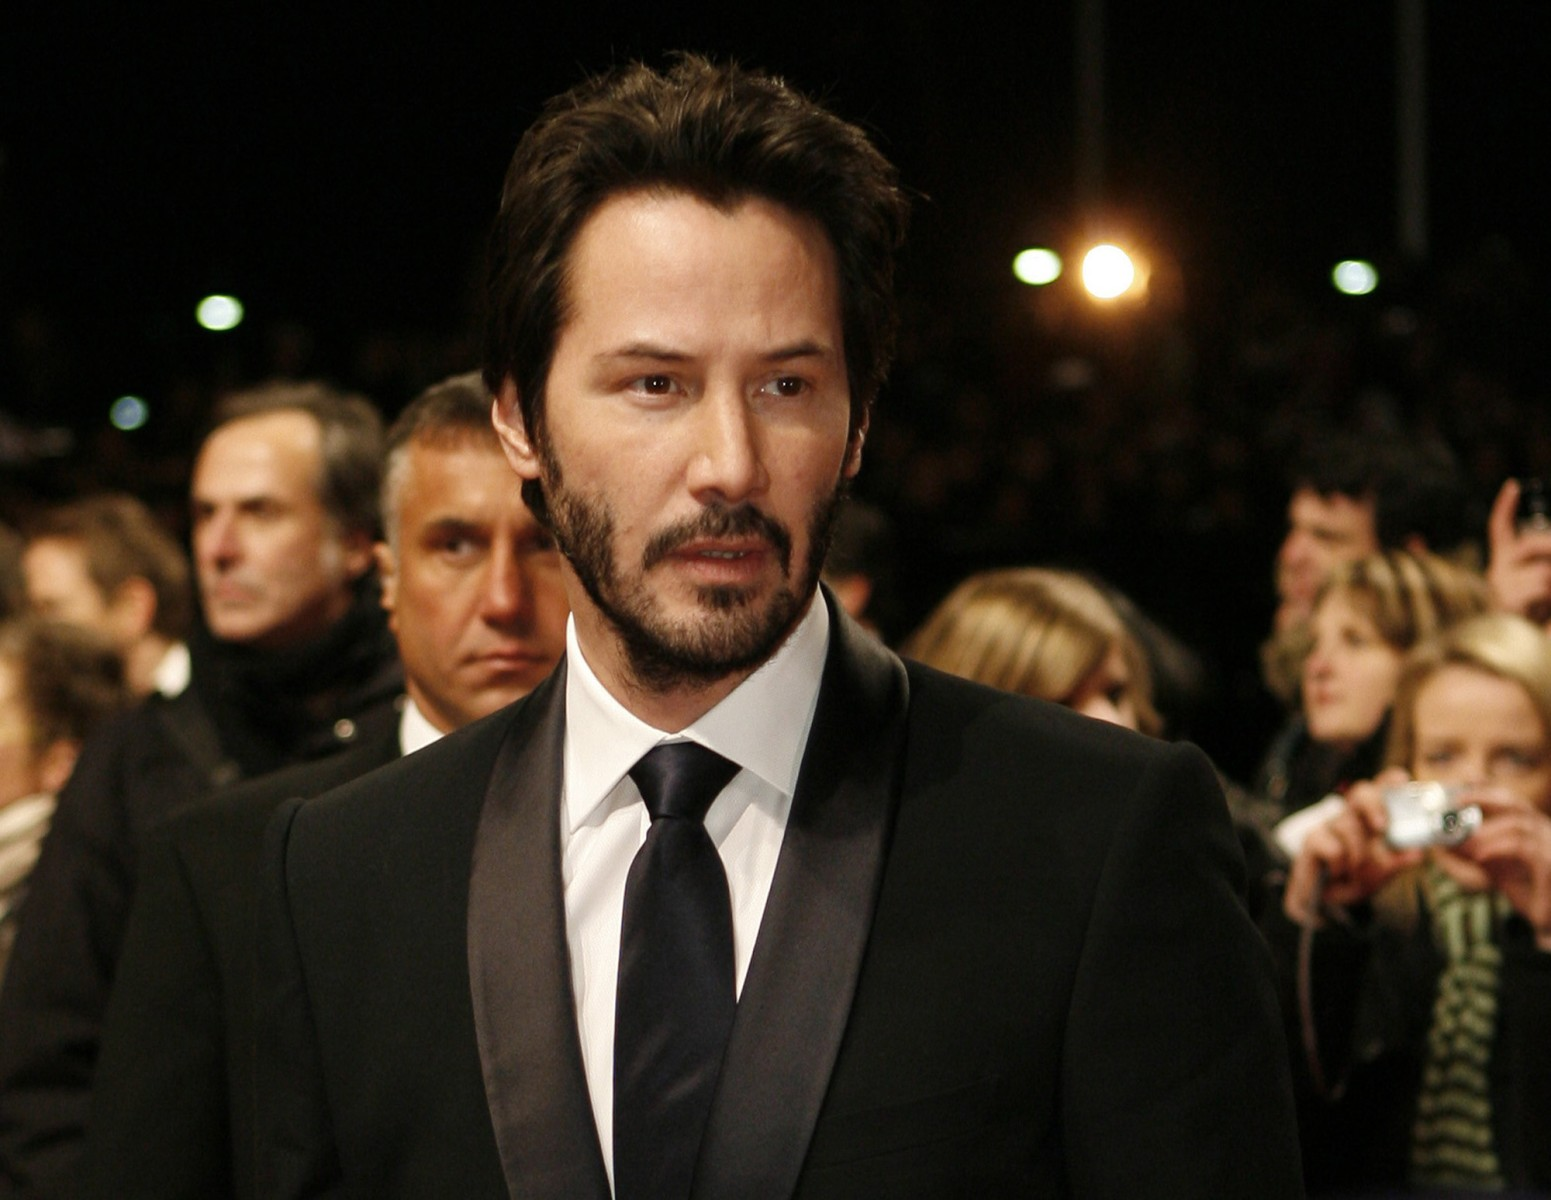 keanu reeves hd wallpapers high definition free